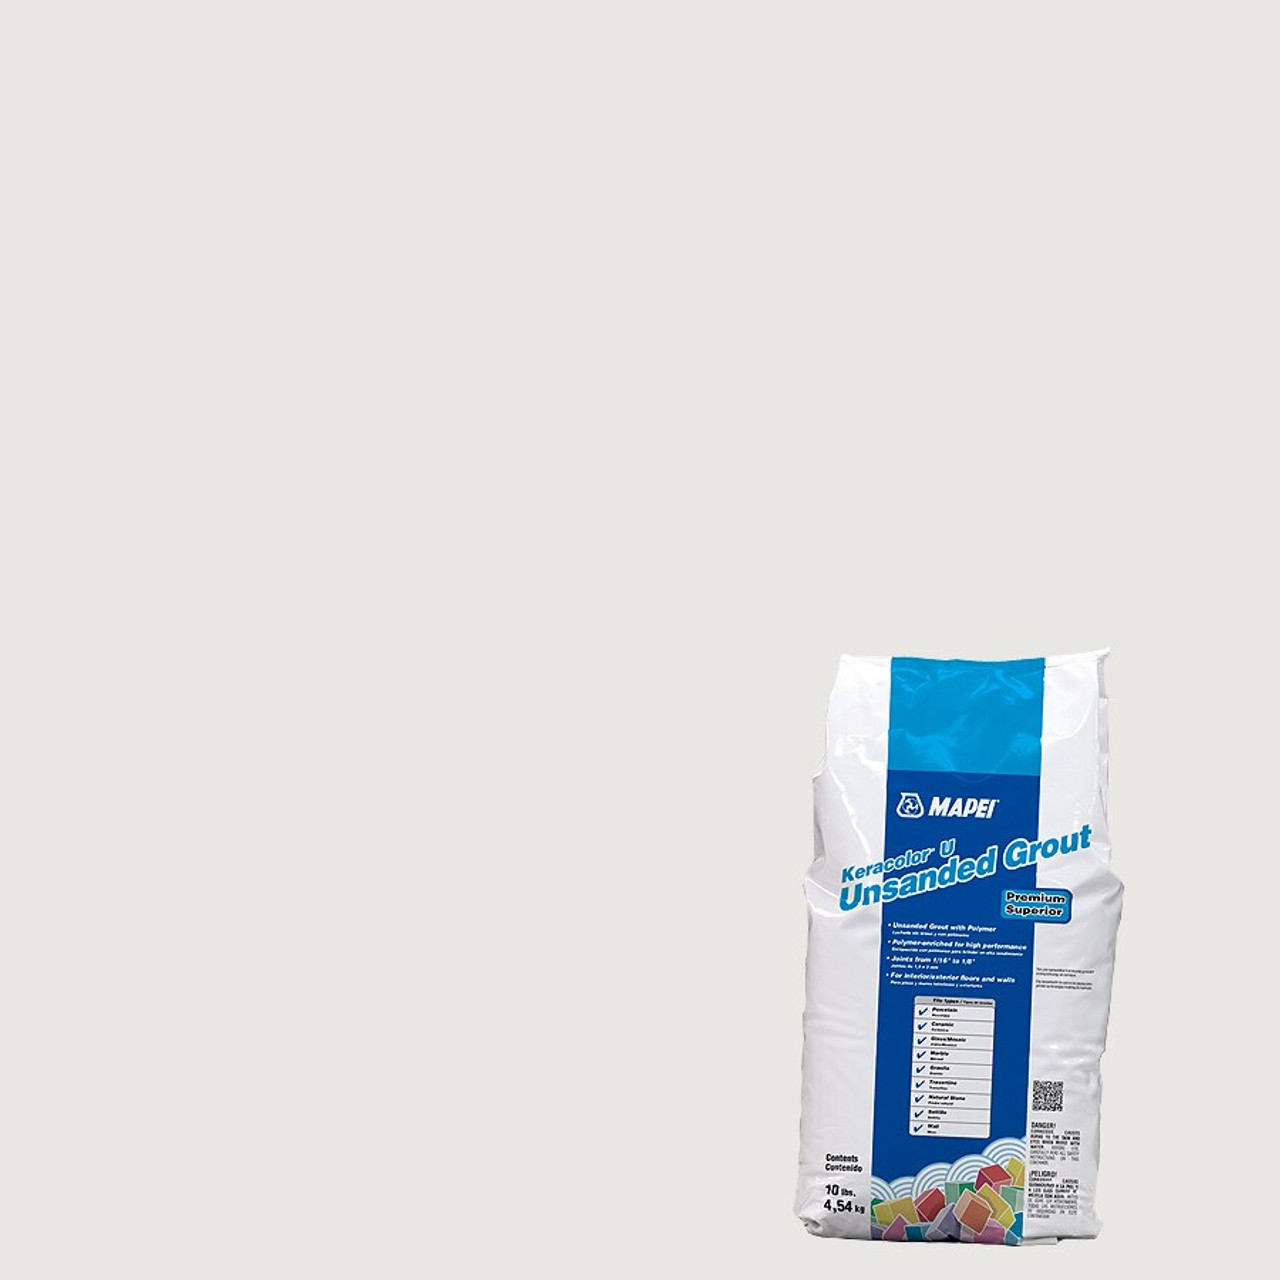 Mapei Mapei Keracolor Unsanded Grout 10 lb Bag - Avalanche